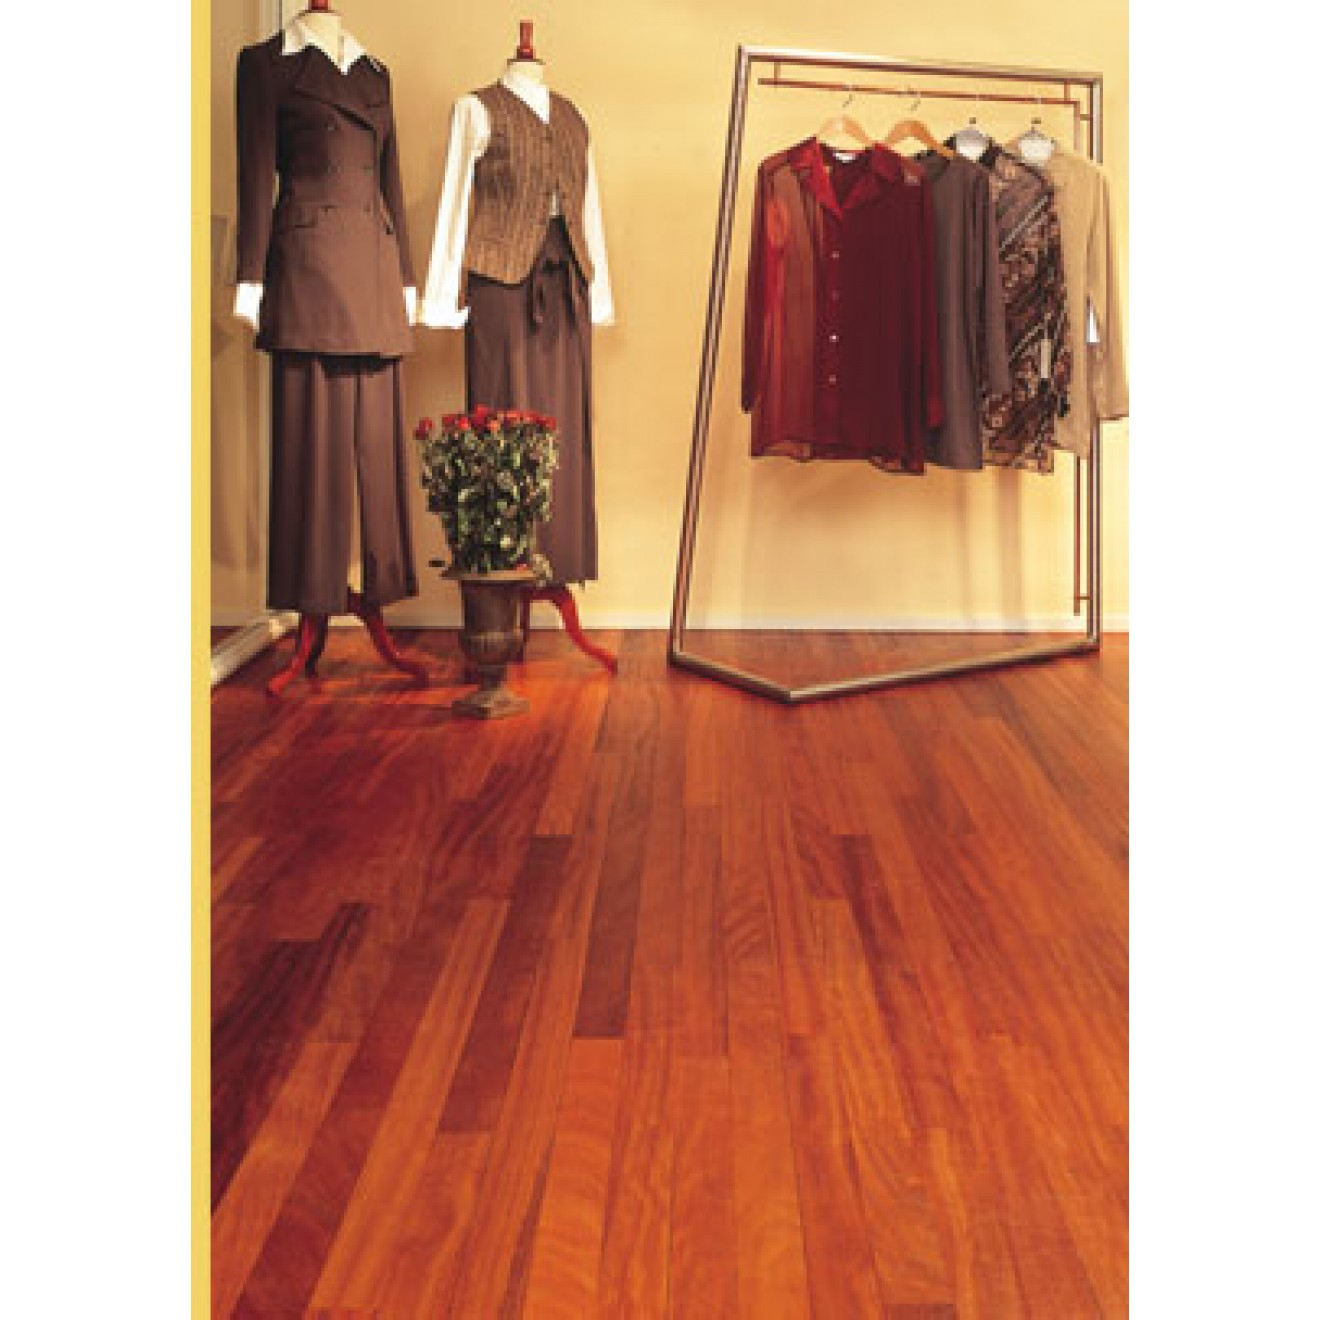 Timberex Wax Oil 5L